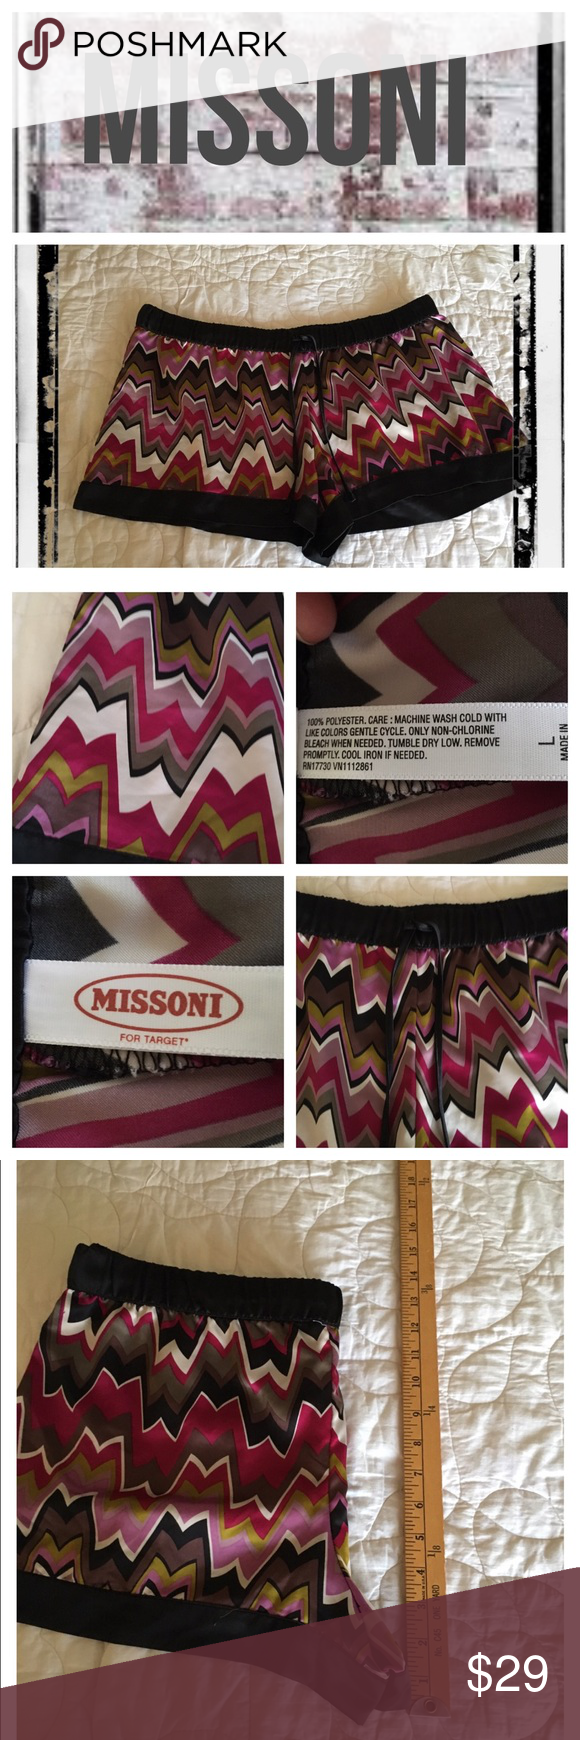 Missoni for Target Satin drawstring shorts BNWOT.                                                           REASONABLE OFFERS ONLY- -Smoke and pet free - I try to stay around 75% off MSRP; please keep this in mind when making offers.  -I do not model anything; everything looks different on everyone and I don't wasn't too Jade that. I will provide measurements if needed.  -NO HOLDS, NO TRADES, POSH RULES ONLY! Missoni Shorts